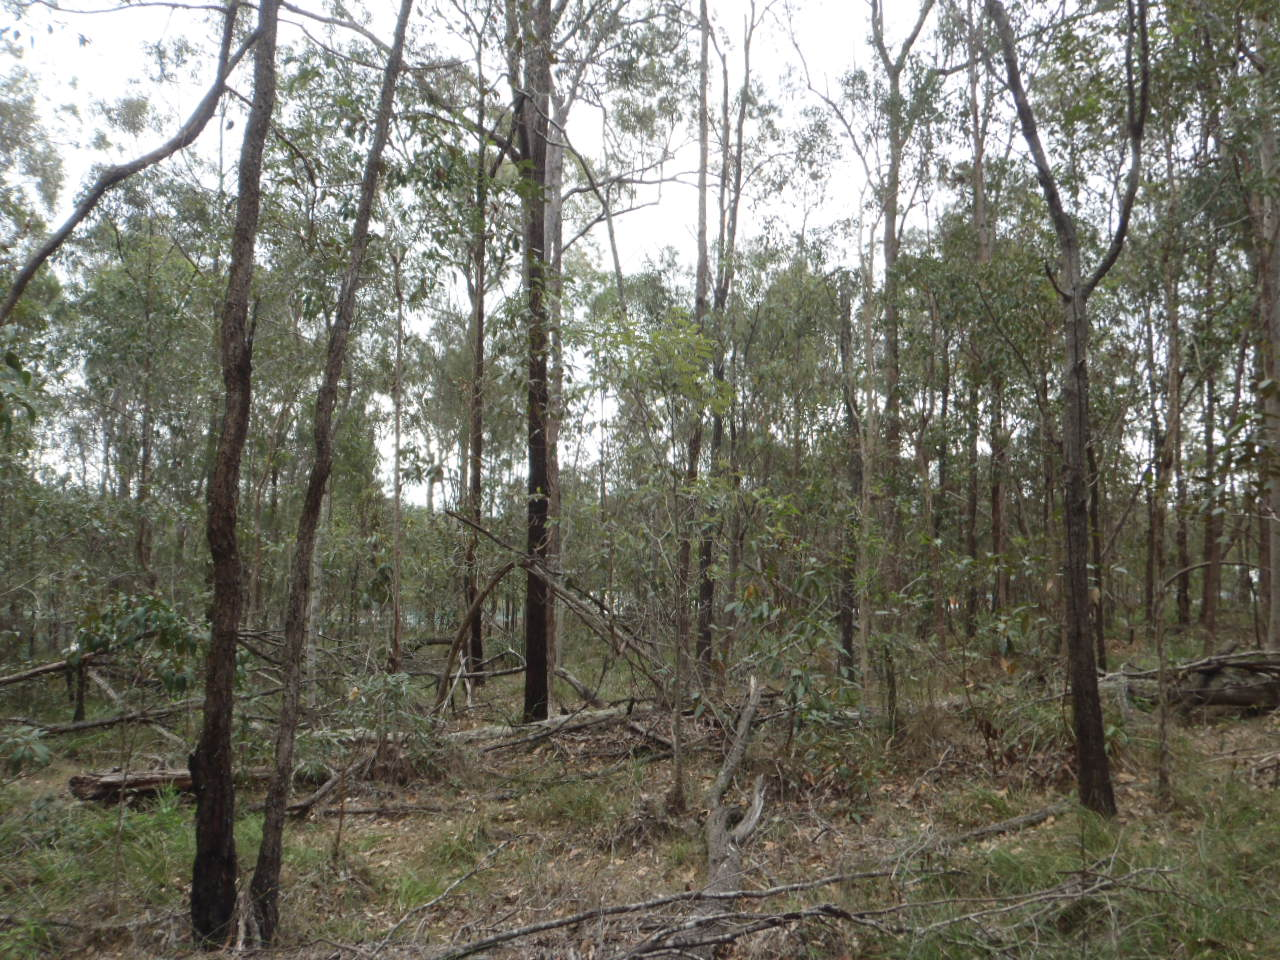 Ecological Assessment of the Helensvale Waste Transfer Station